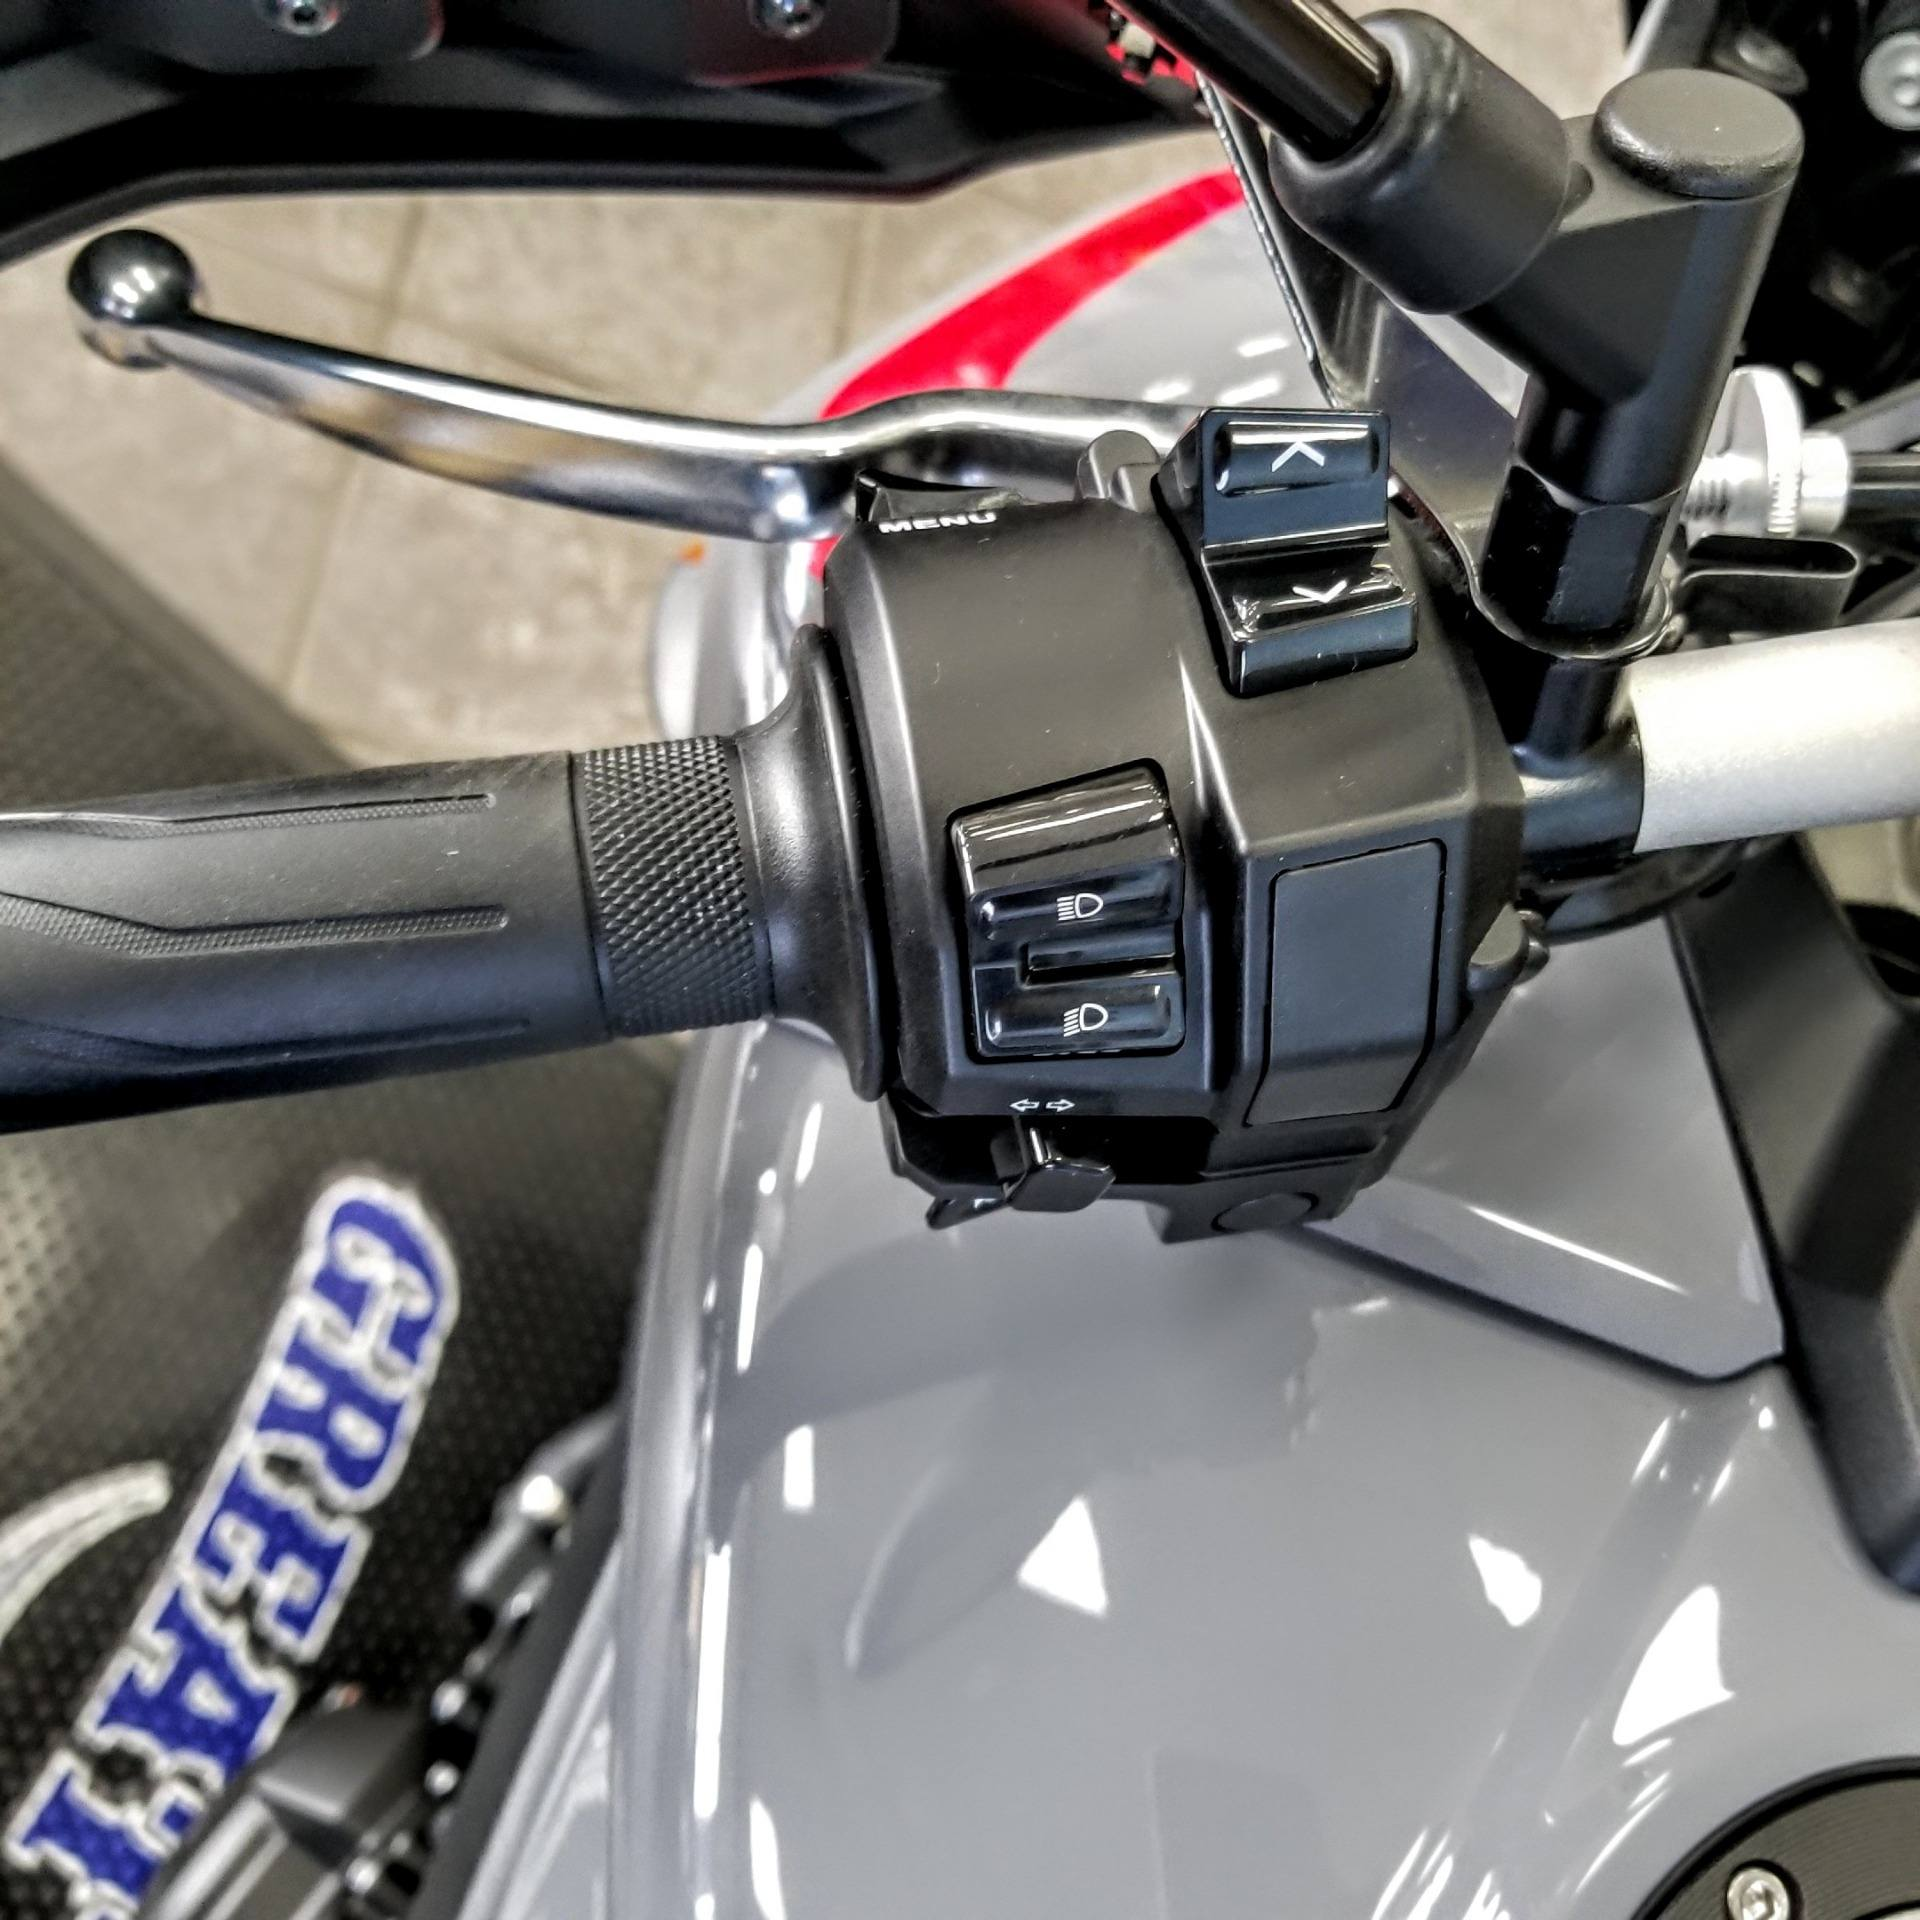 2019 Yamaha Tracer 900 in Hickory, North Carolina - Photo 14